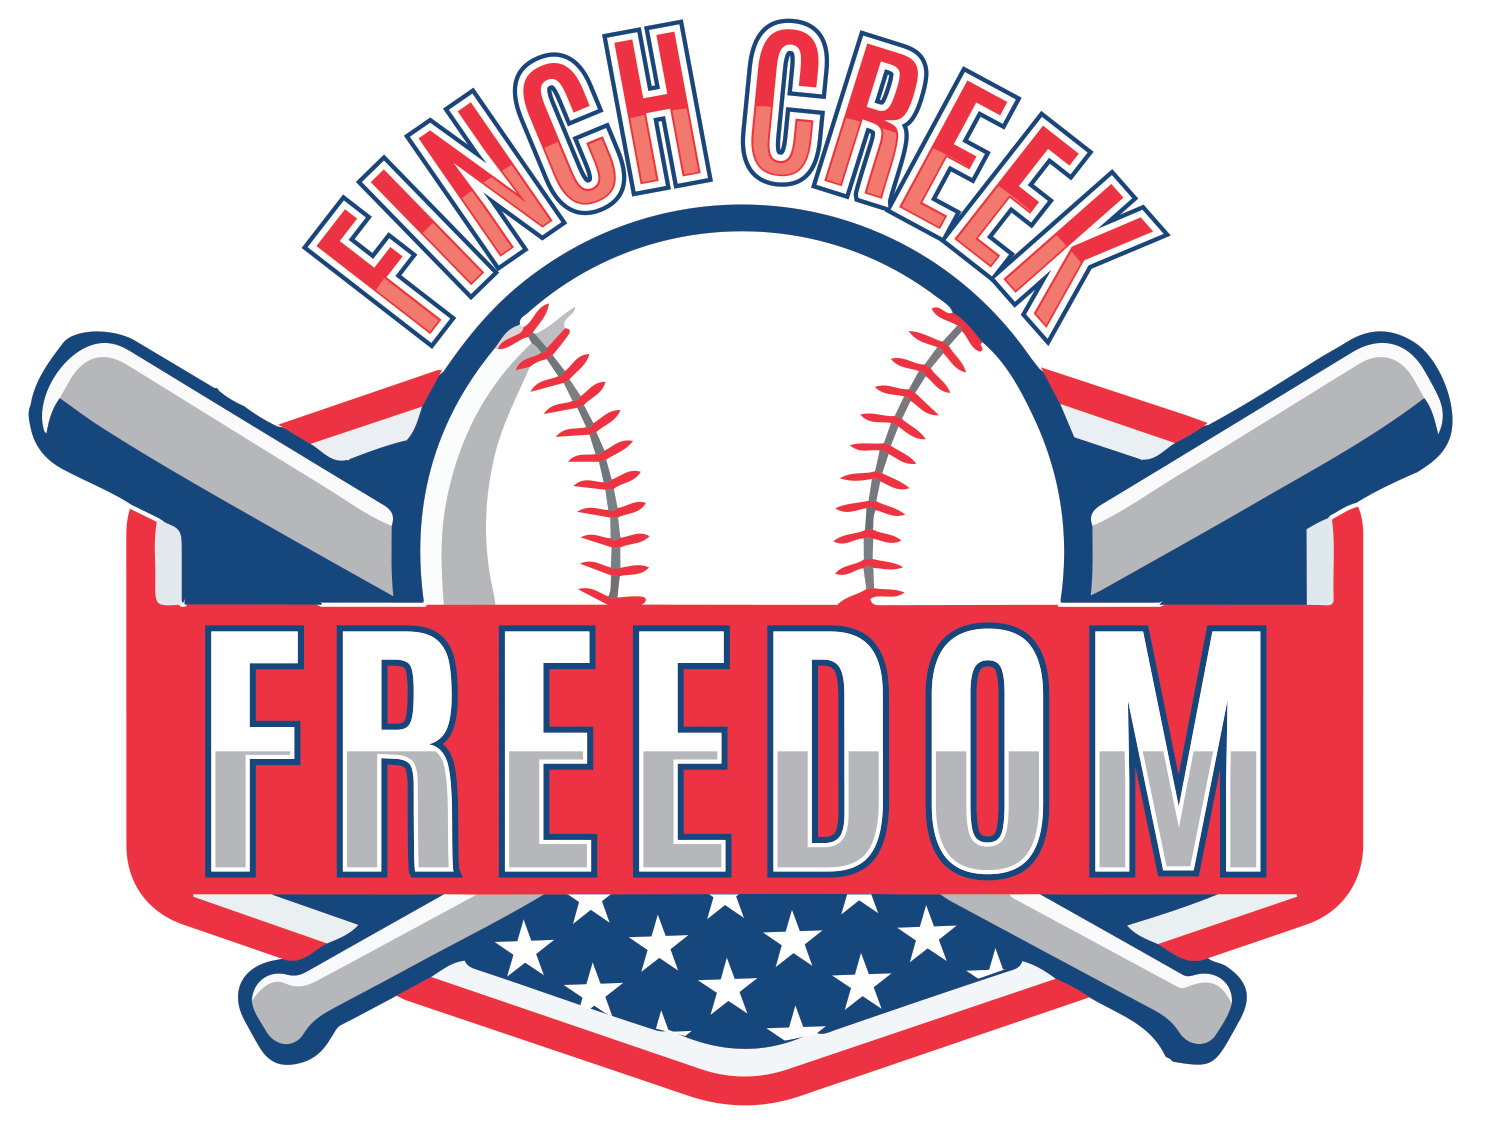 png freeuse stock Finch creek freedom noblesville. Baseball clip team